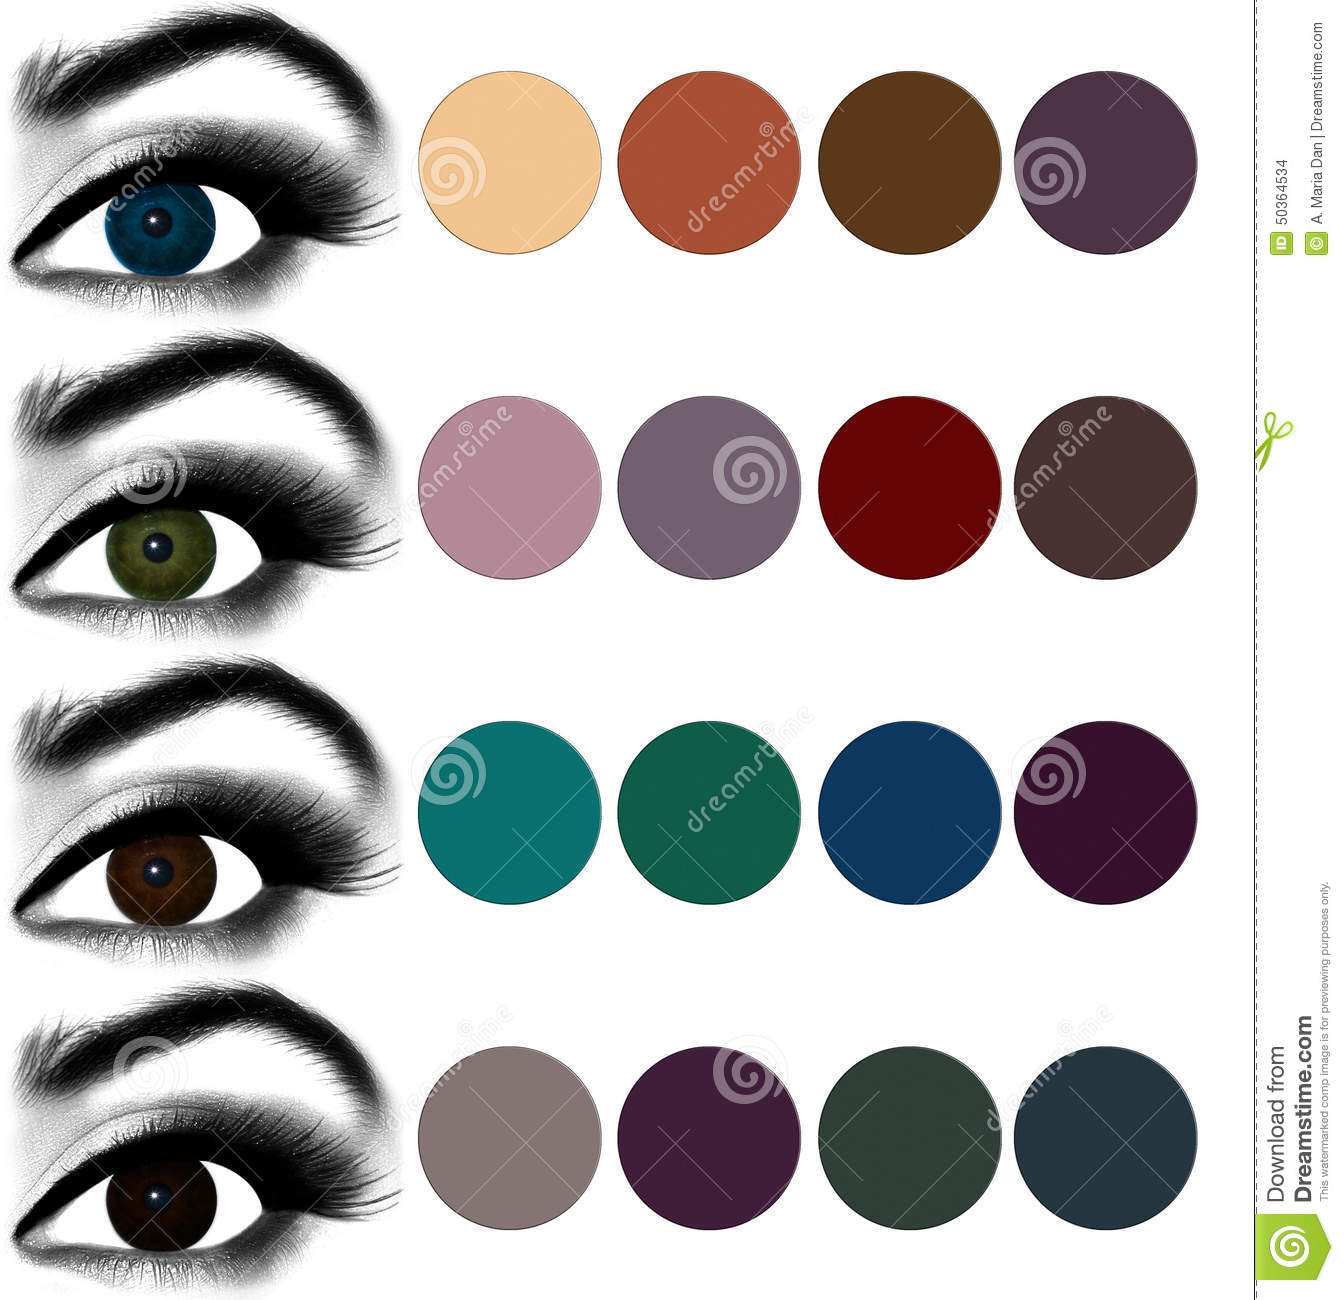 eyes makeup matching eyeshadow to eye color stock photo image 50364534. Black Bedroom Furniture Sets. Home Design Ideas